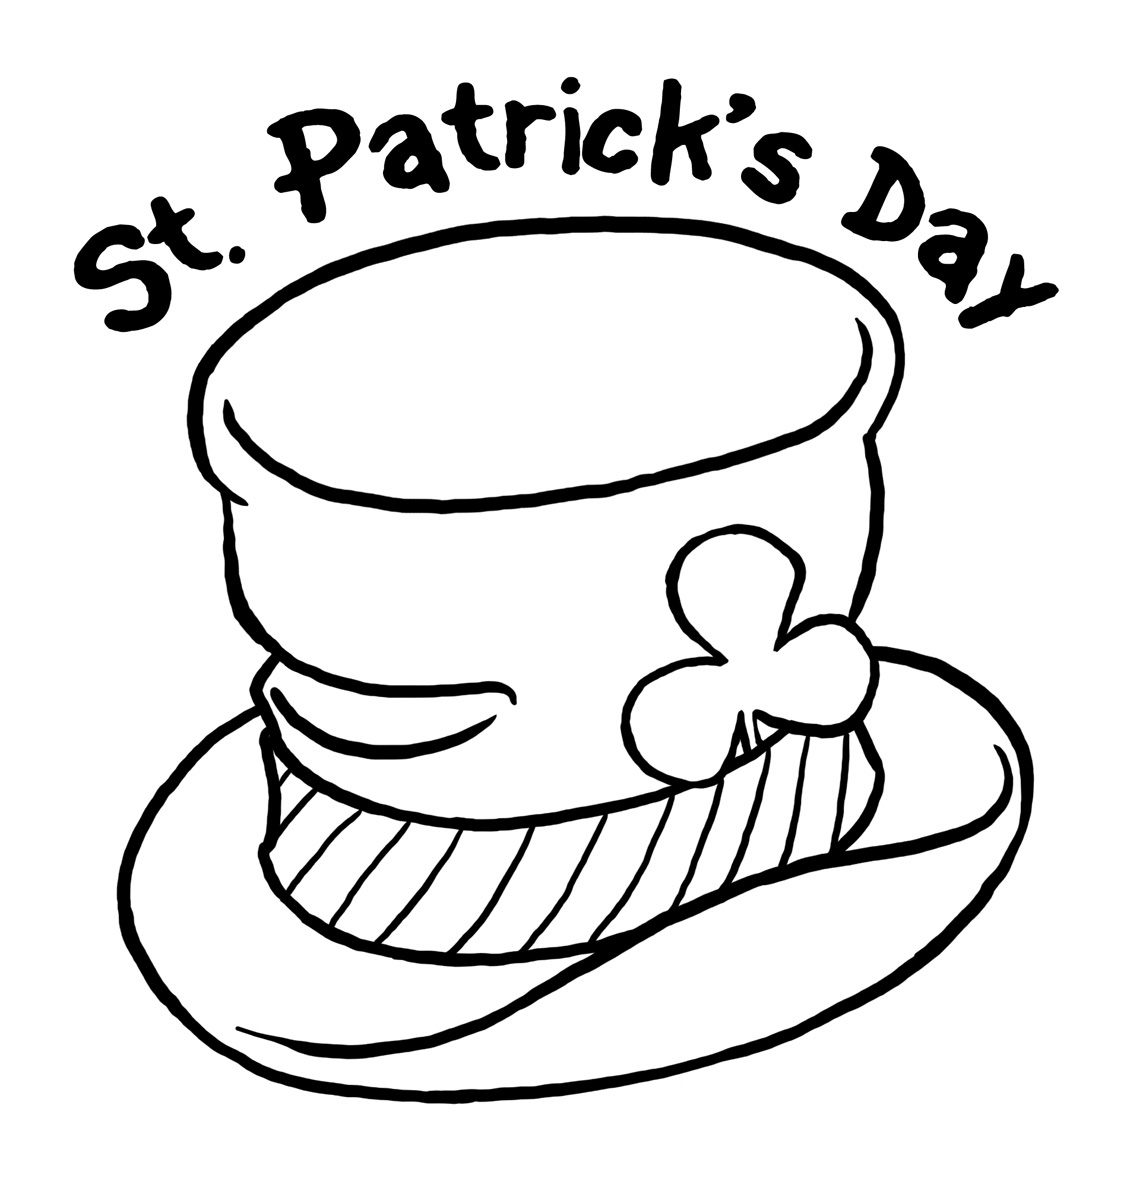 St Patricks Day Coloring Pages | St. Patrick's Day Coloring Pages - Free Printable St Patrick Day Coloring Pages